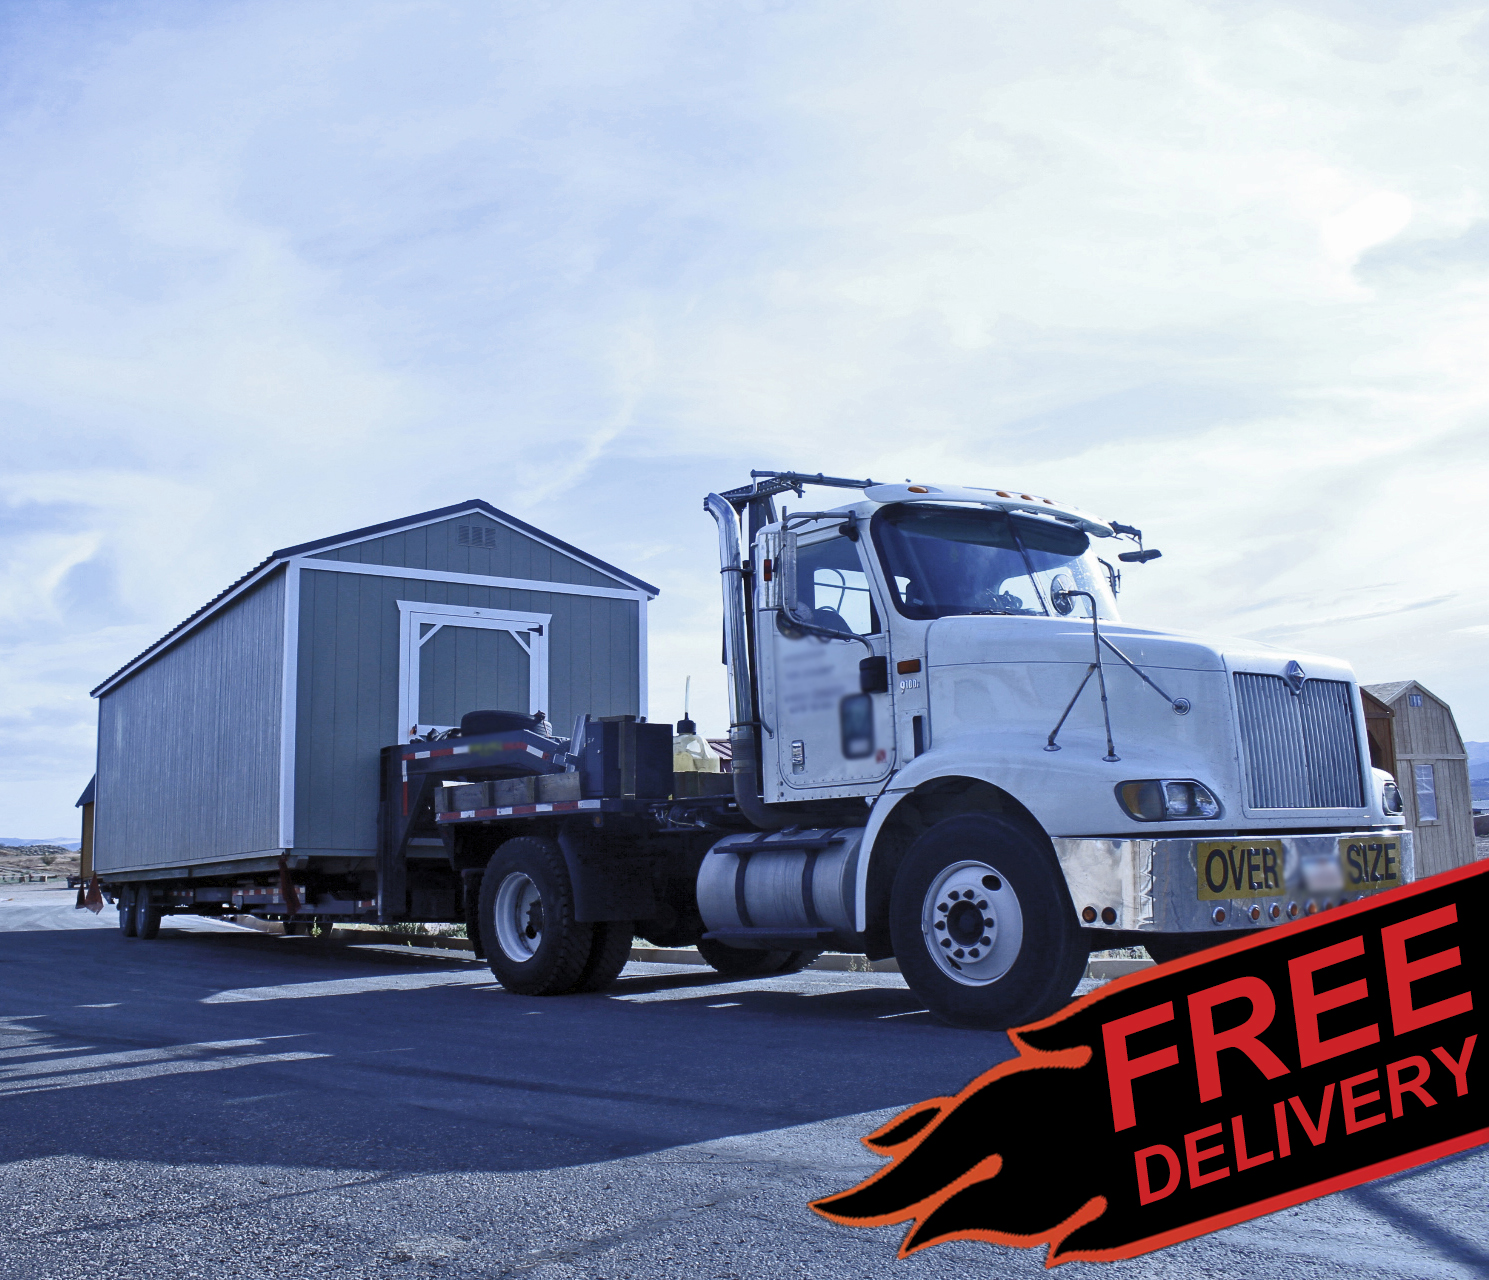 Free delivery included with your Vegas Shed within 50 miles of Las Vegas.